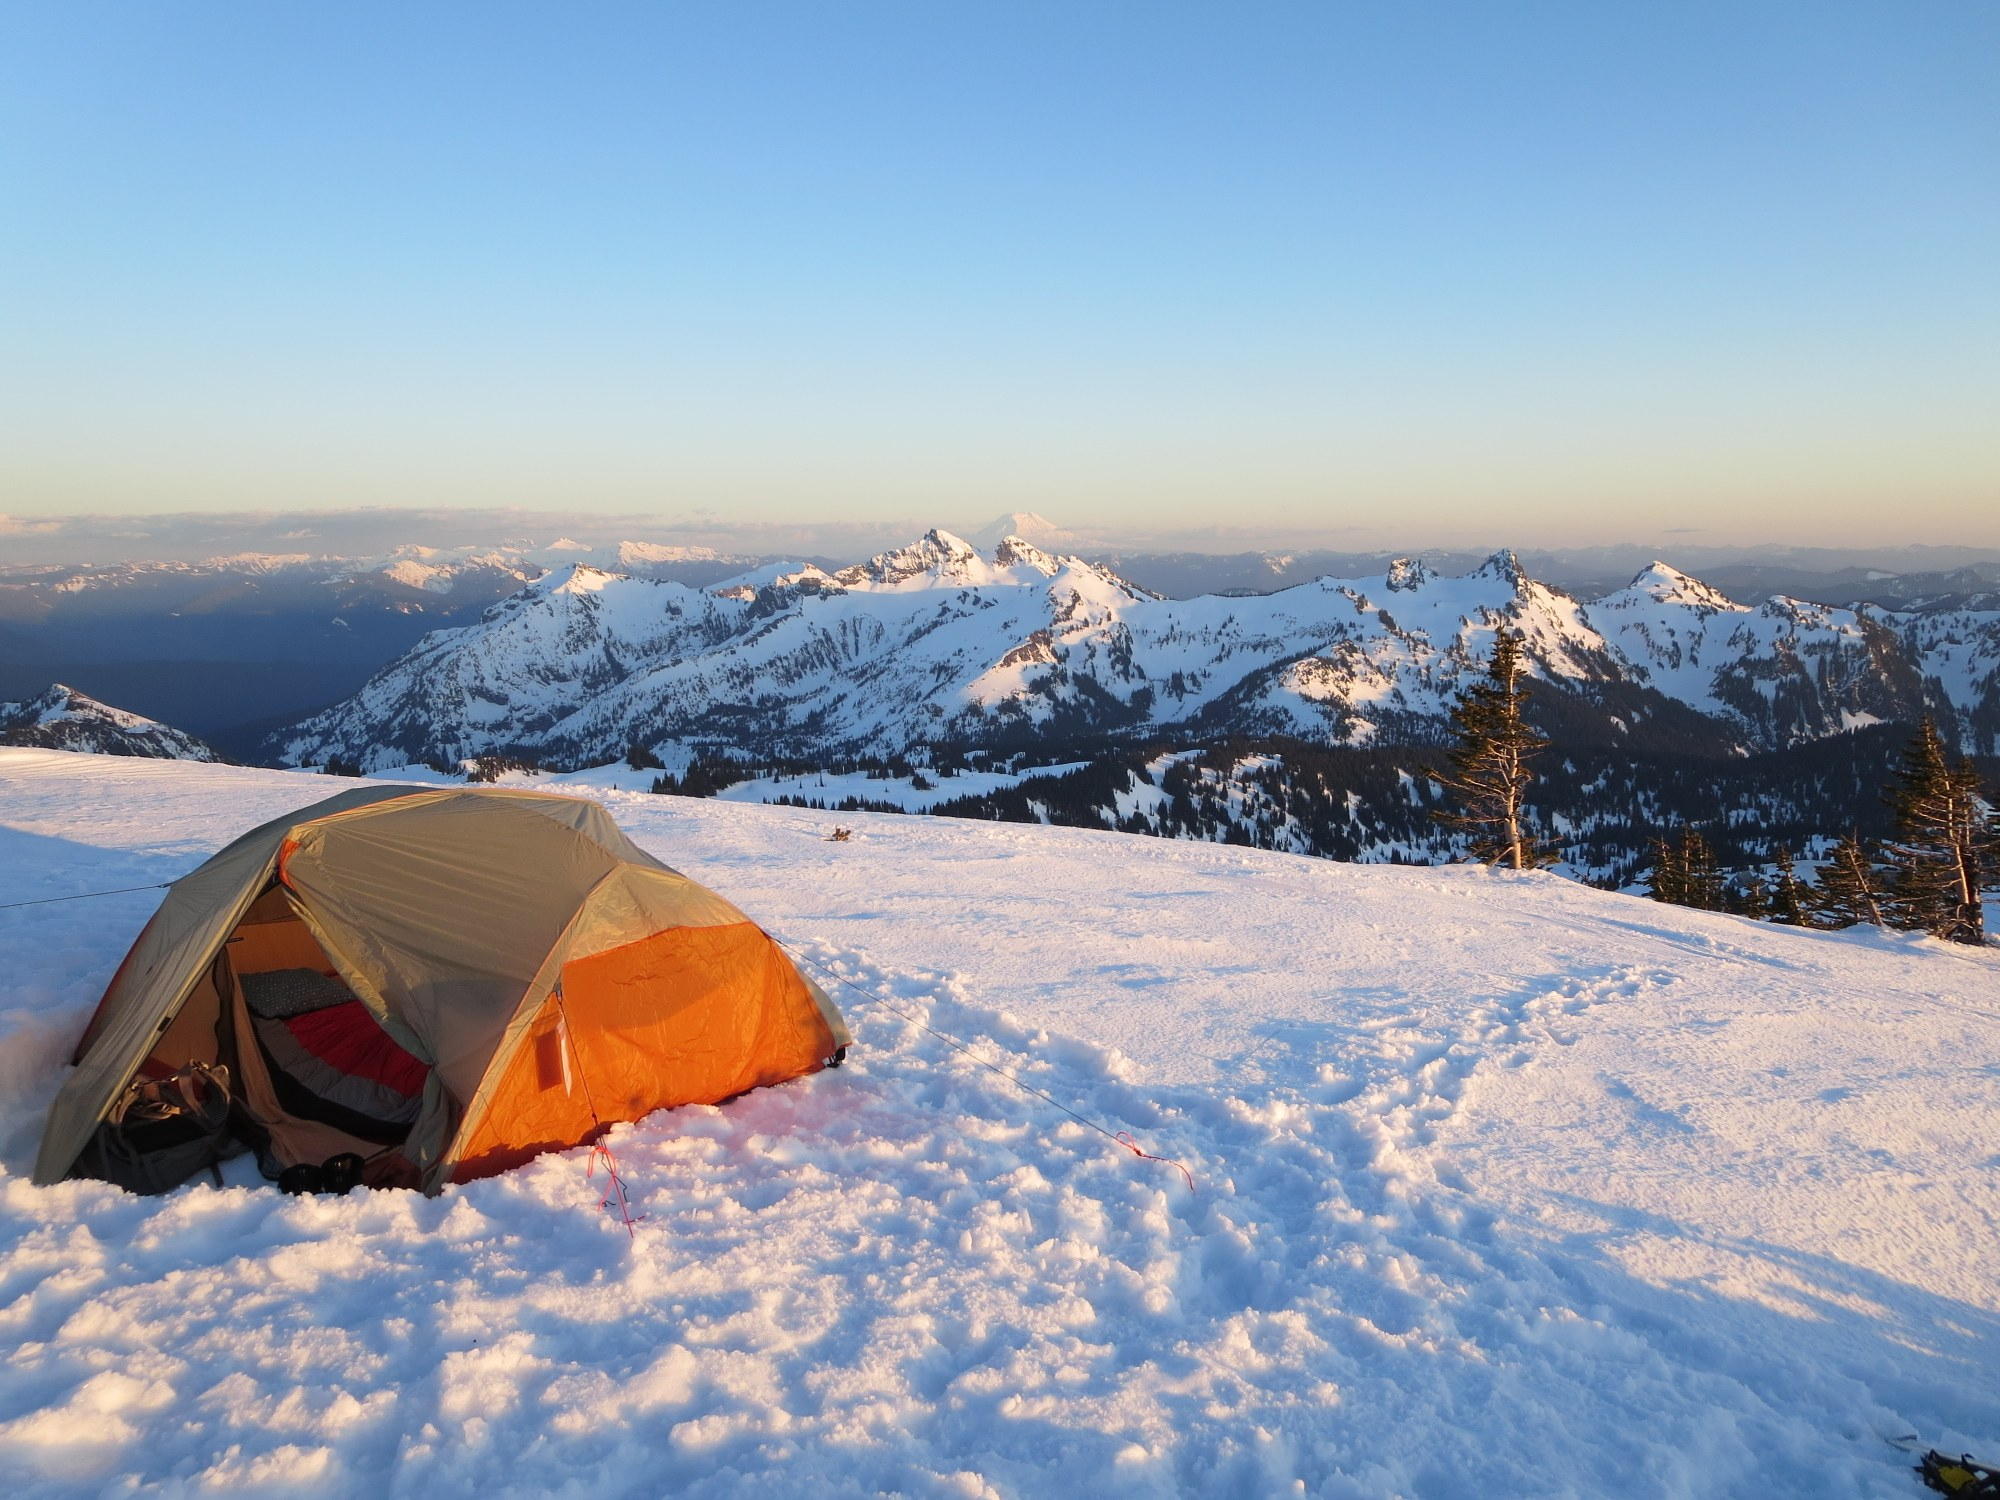 Snow Camping 101: An Ode to the Cold